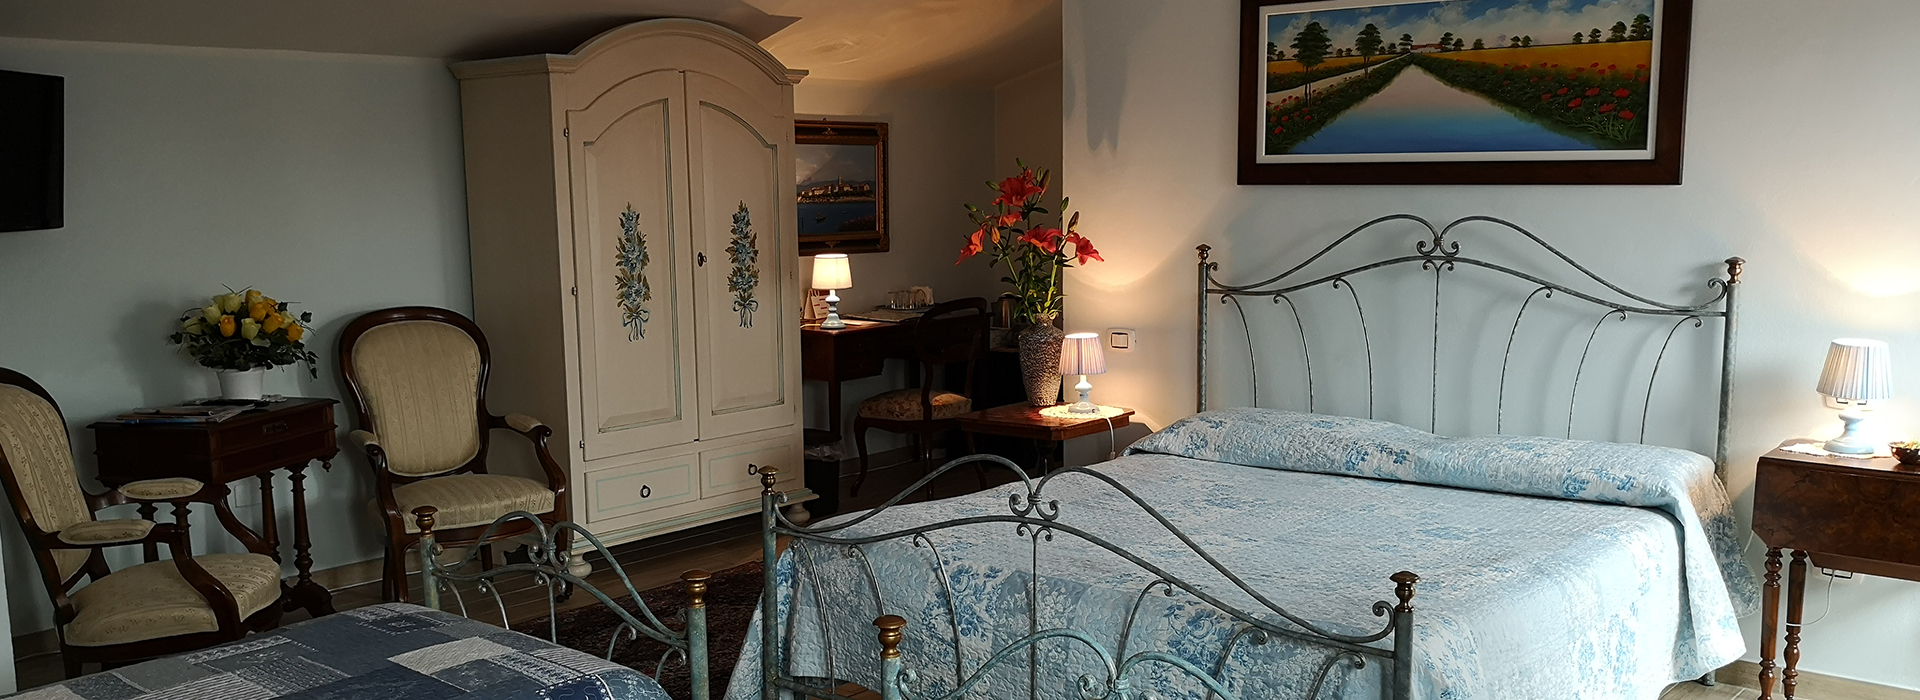 You can find<br> refined and <br> comfortable <br> rooms <br>very close <br> to Pavia